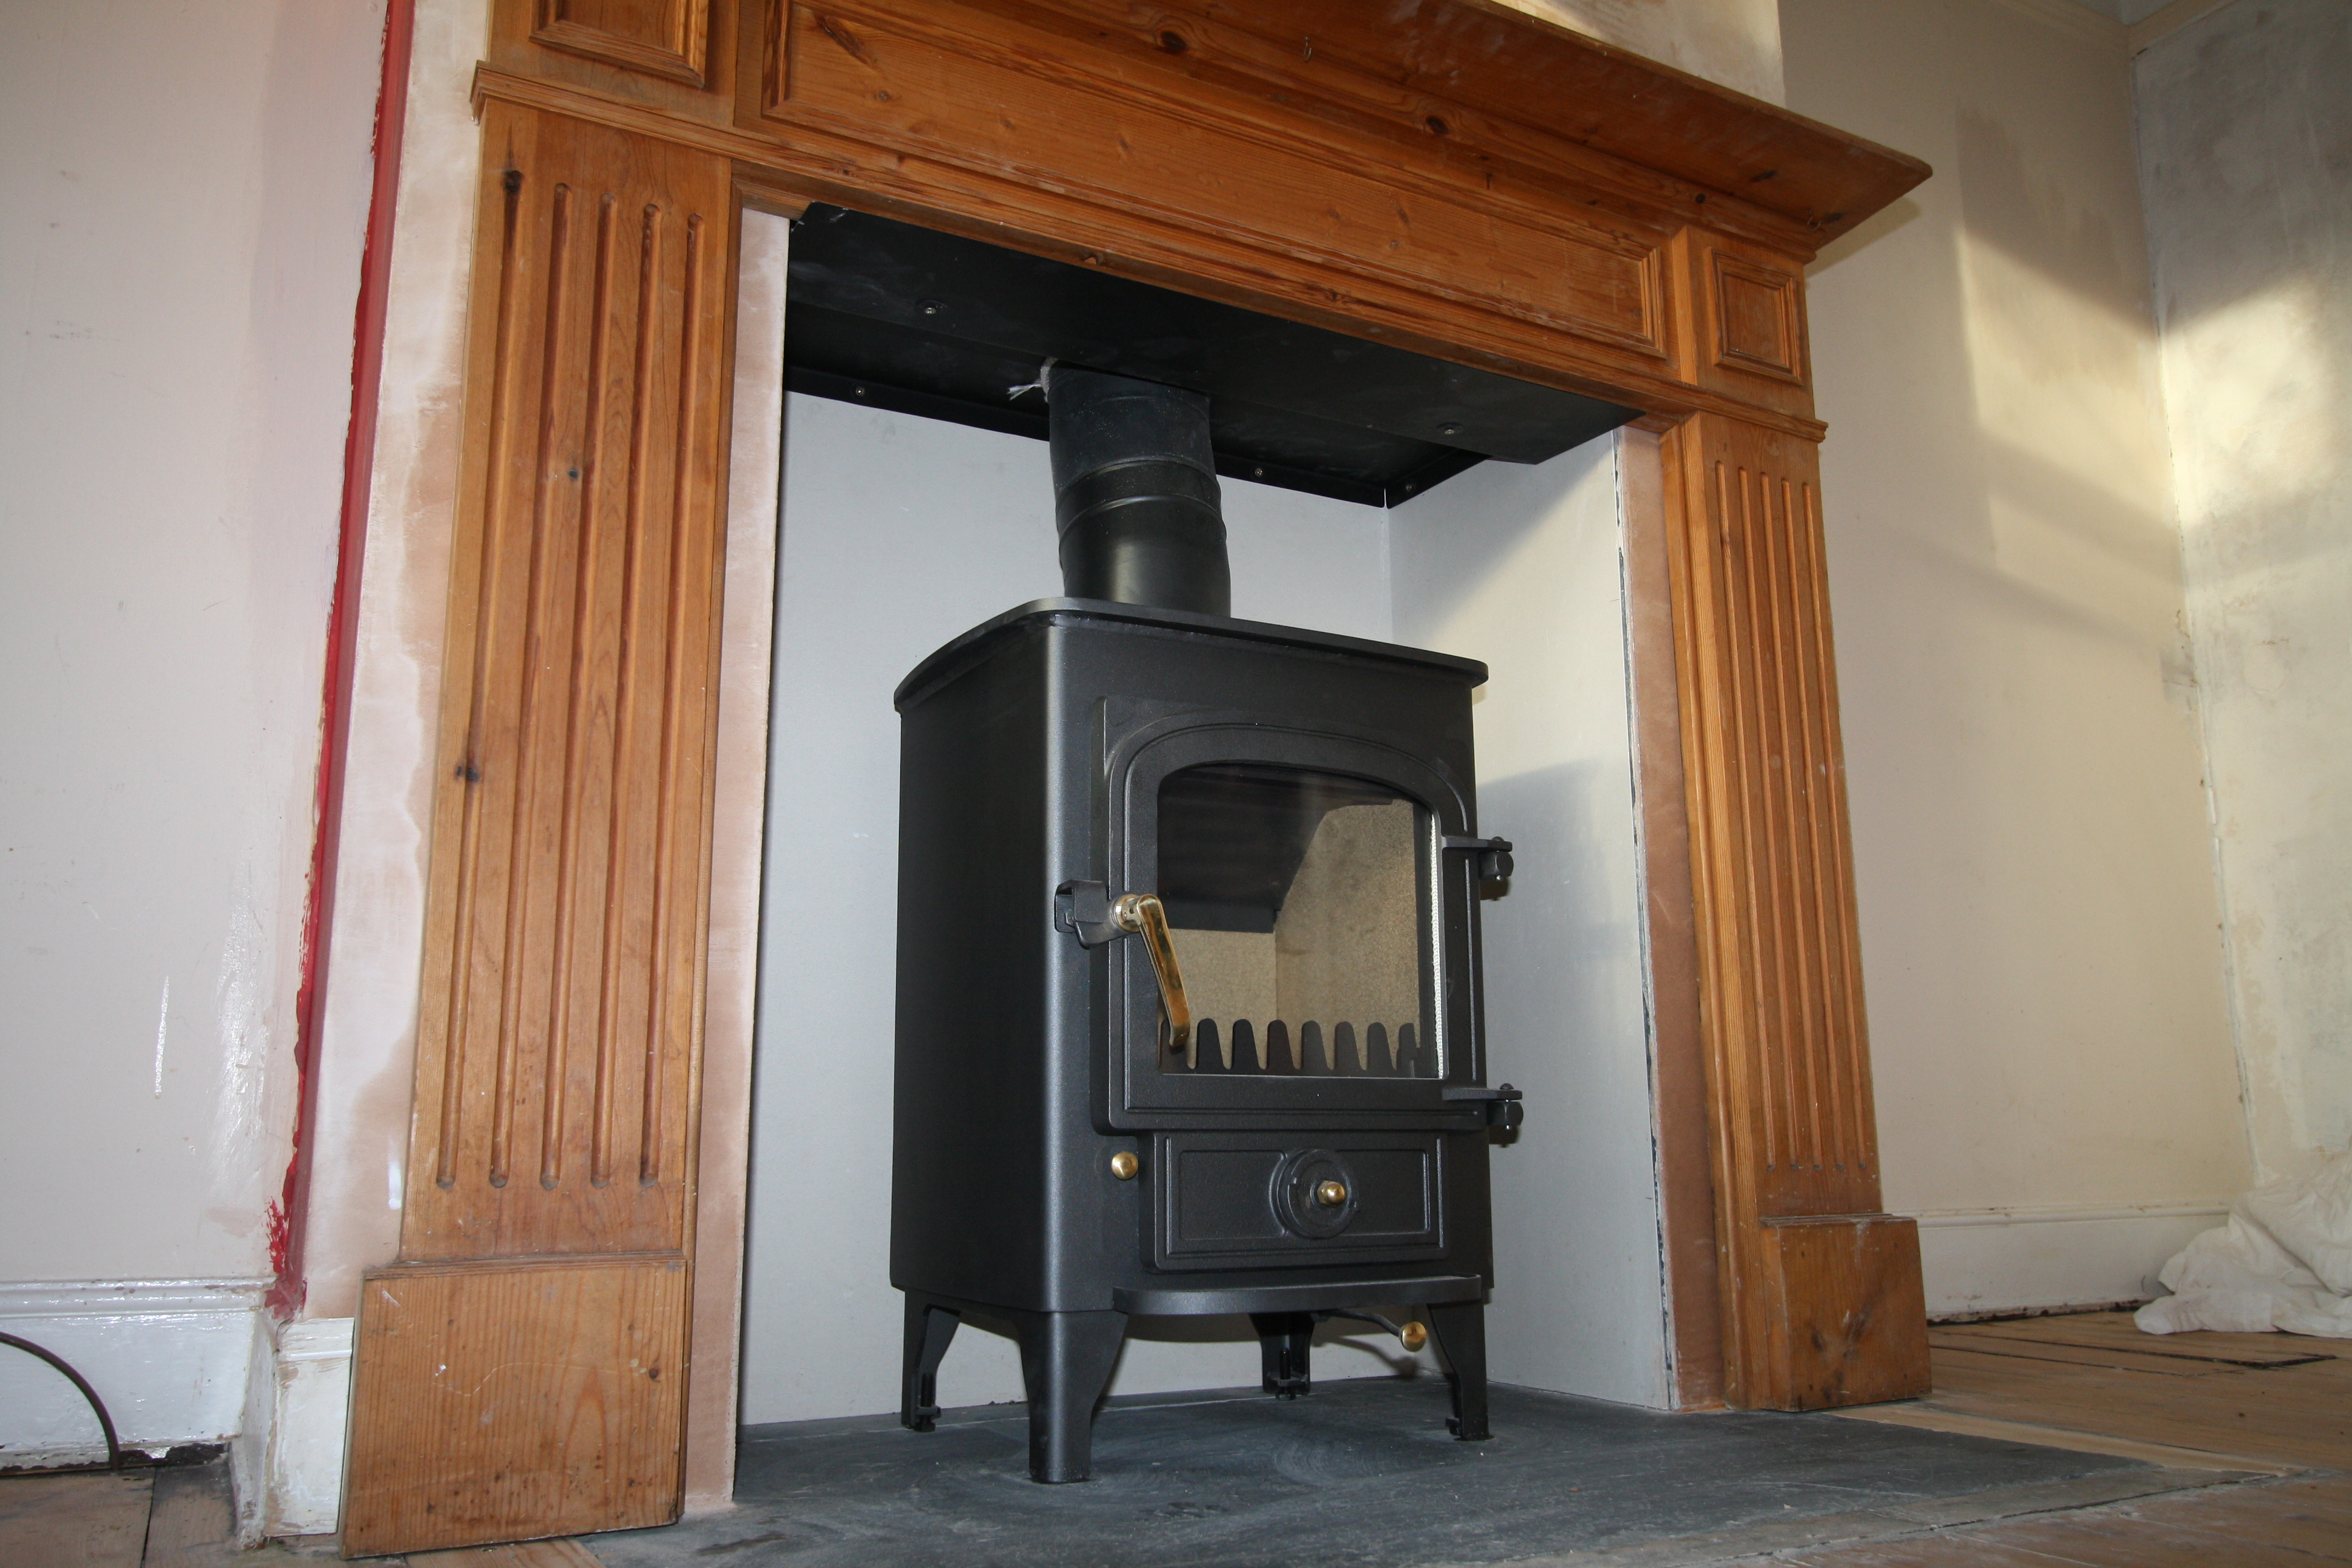 Installation of fireplaces and chimneys. Chimney for fireplaces